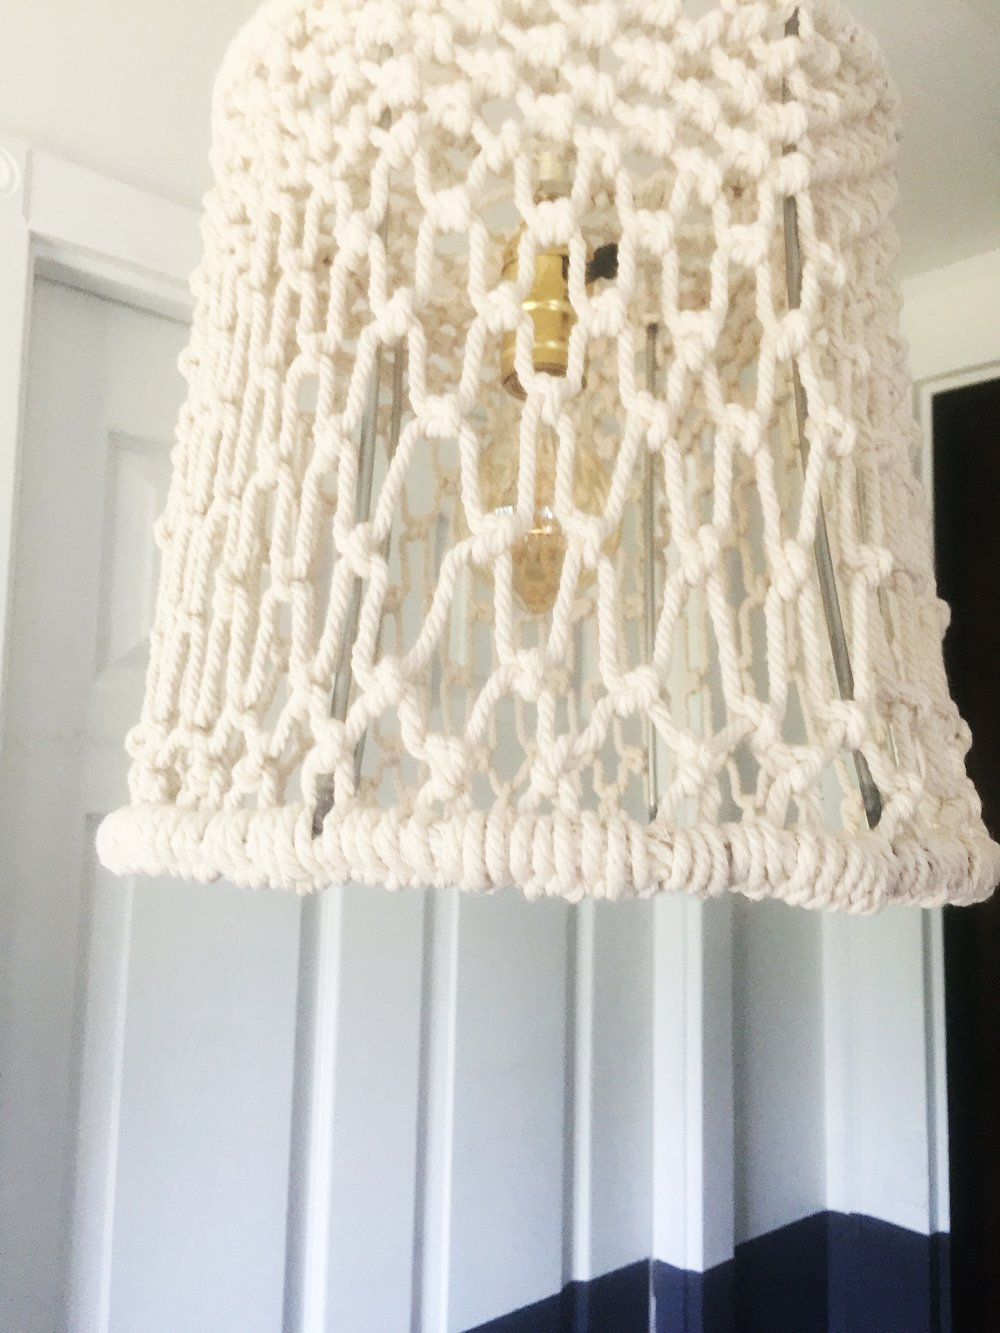 Upcycled Macrame Pendant Light